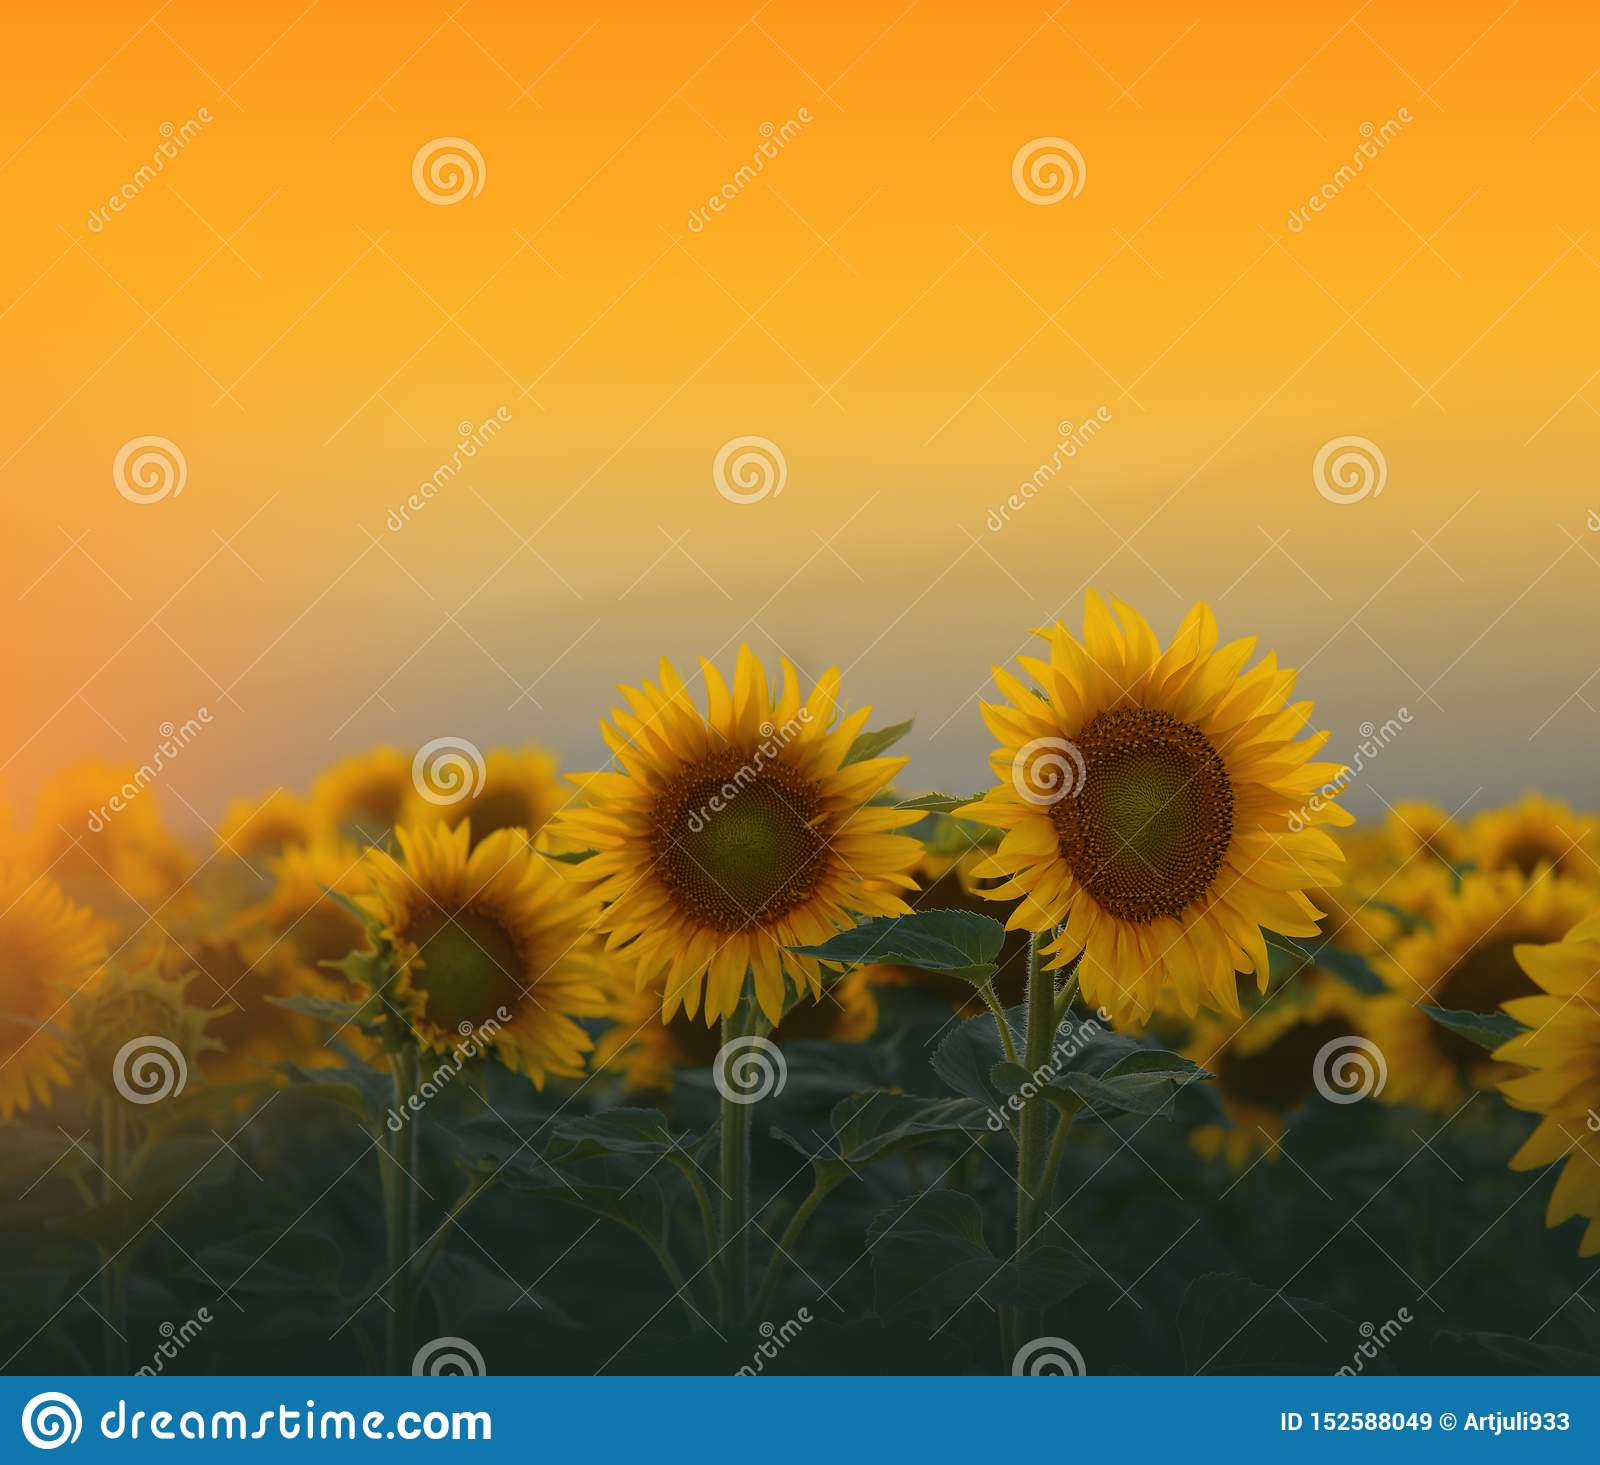 194 594 Artistic Wallpaper Photos Free Royalty Free Stock Photos From Dreamstime